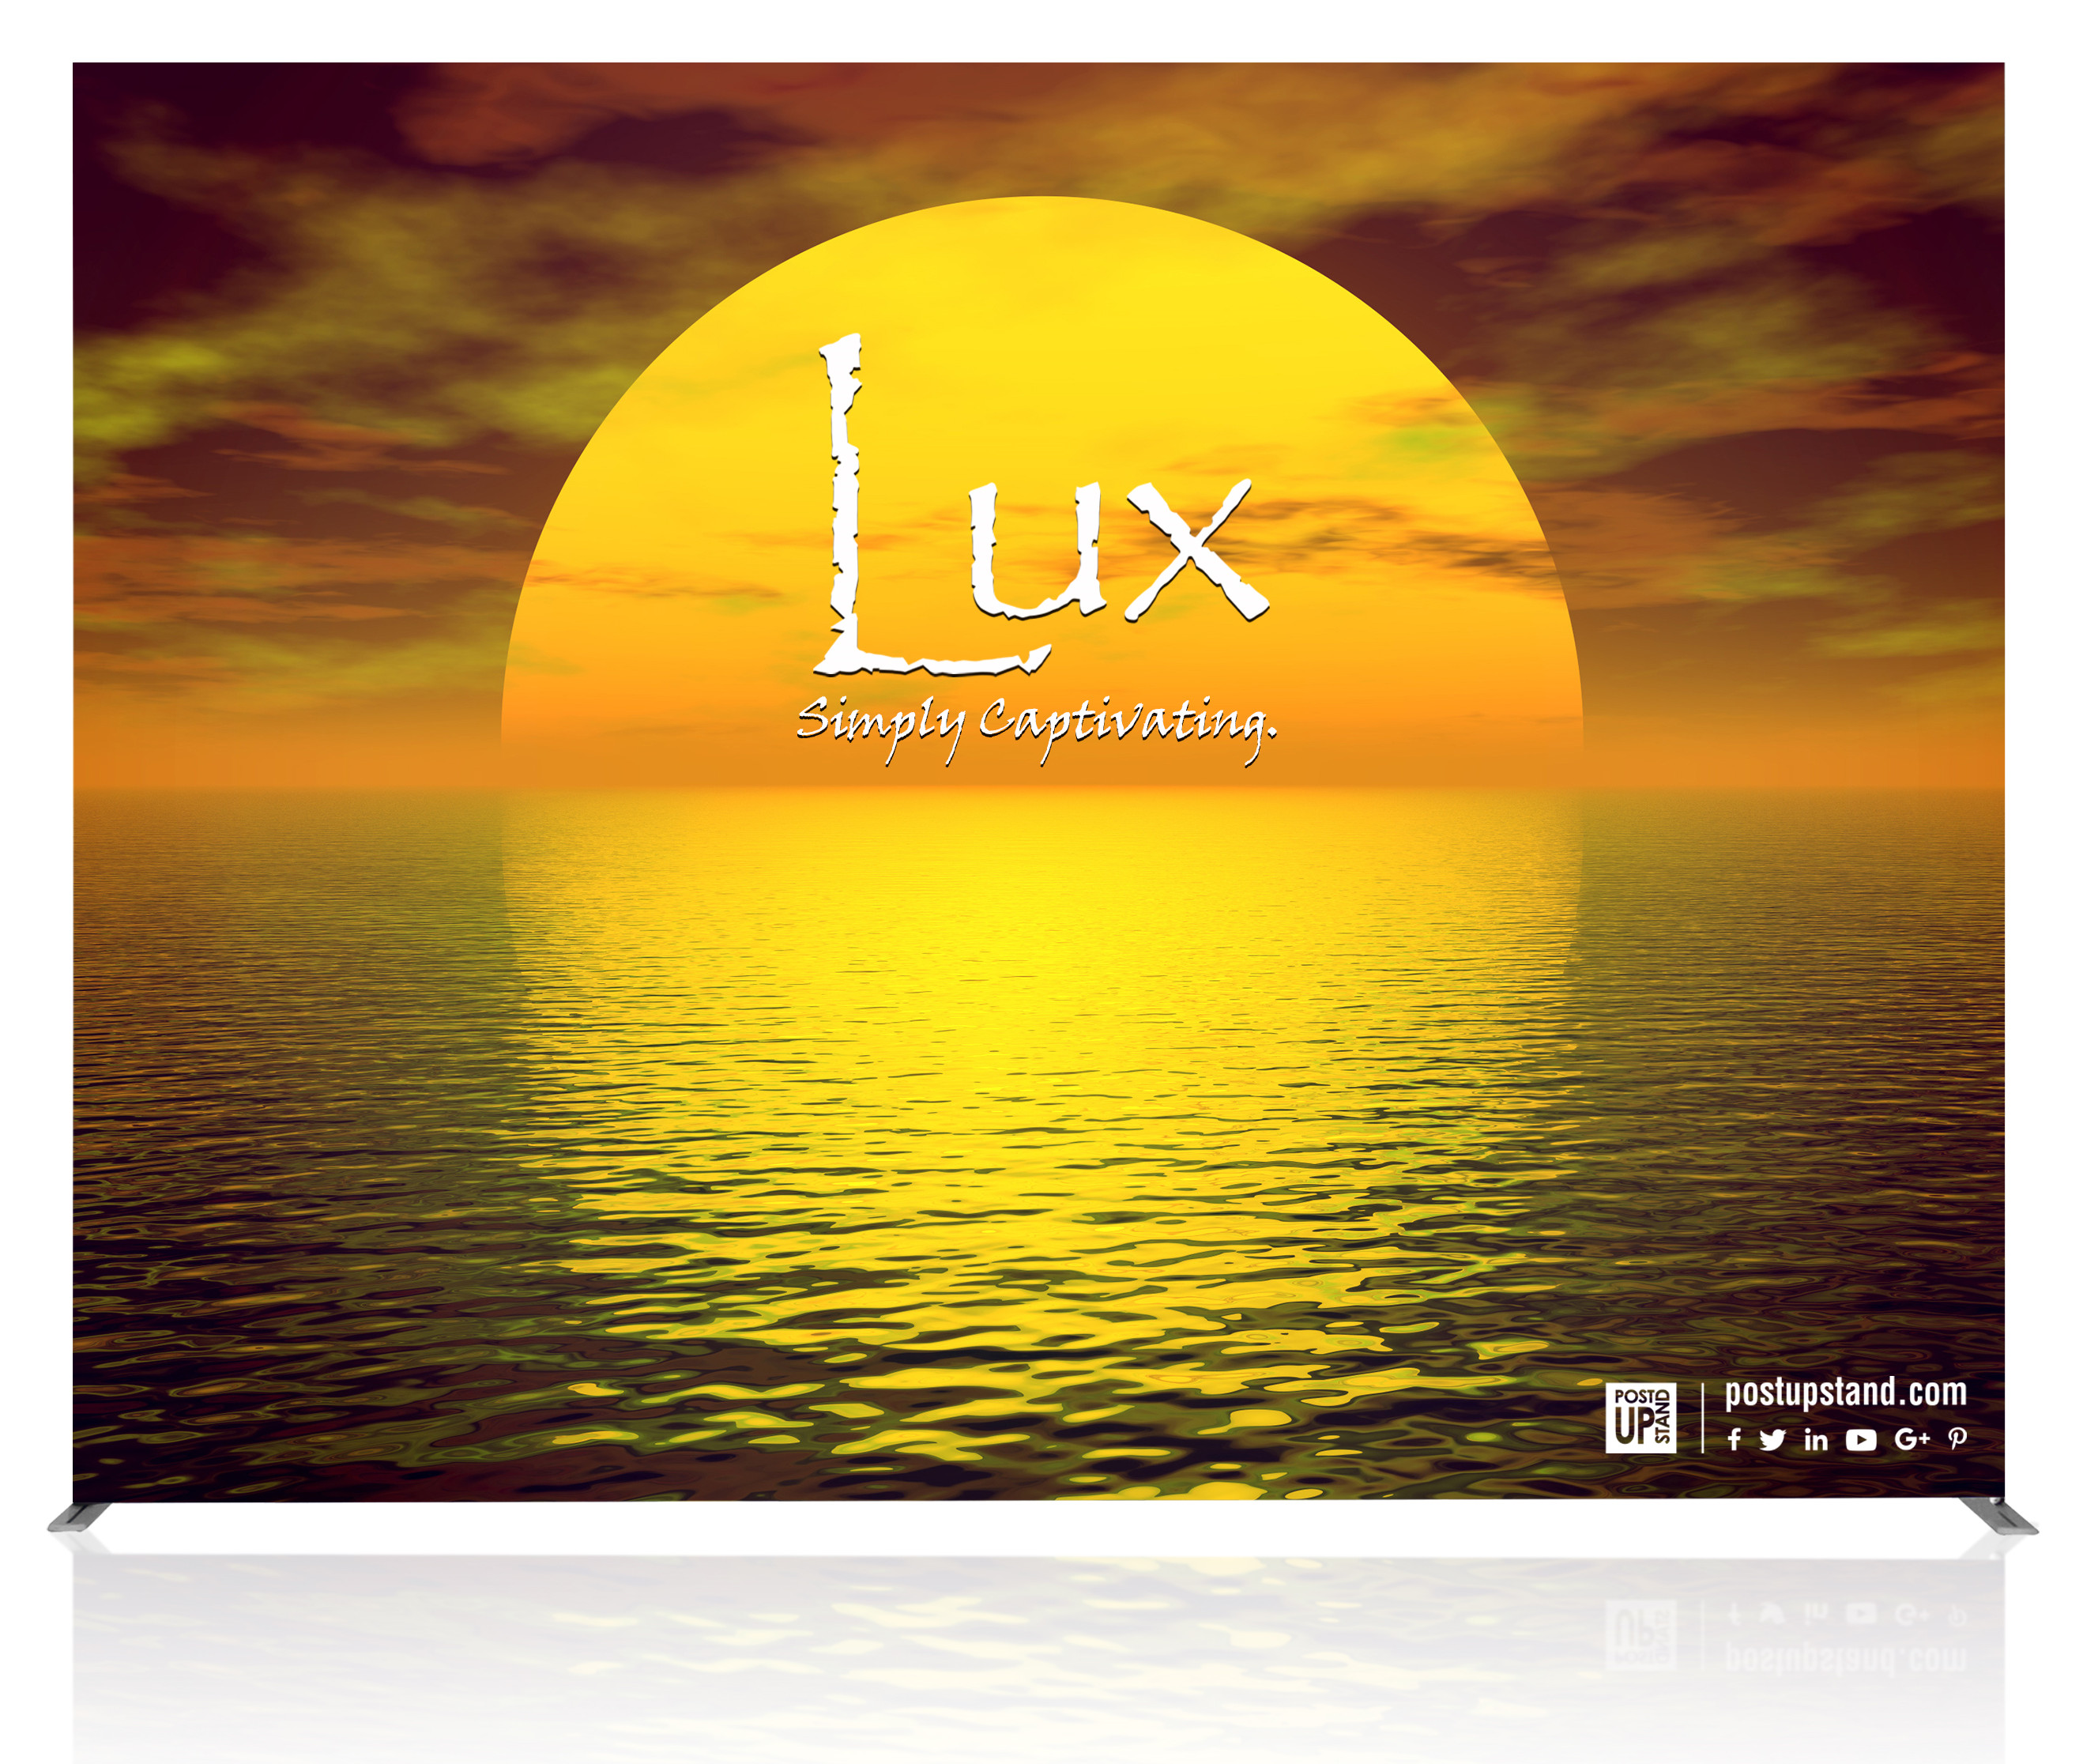 LUX is an LED Backlit SEG Pop Up display